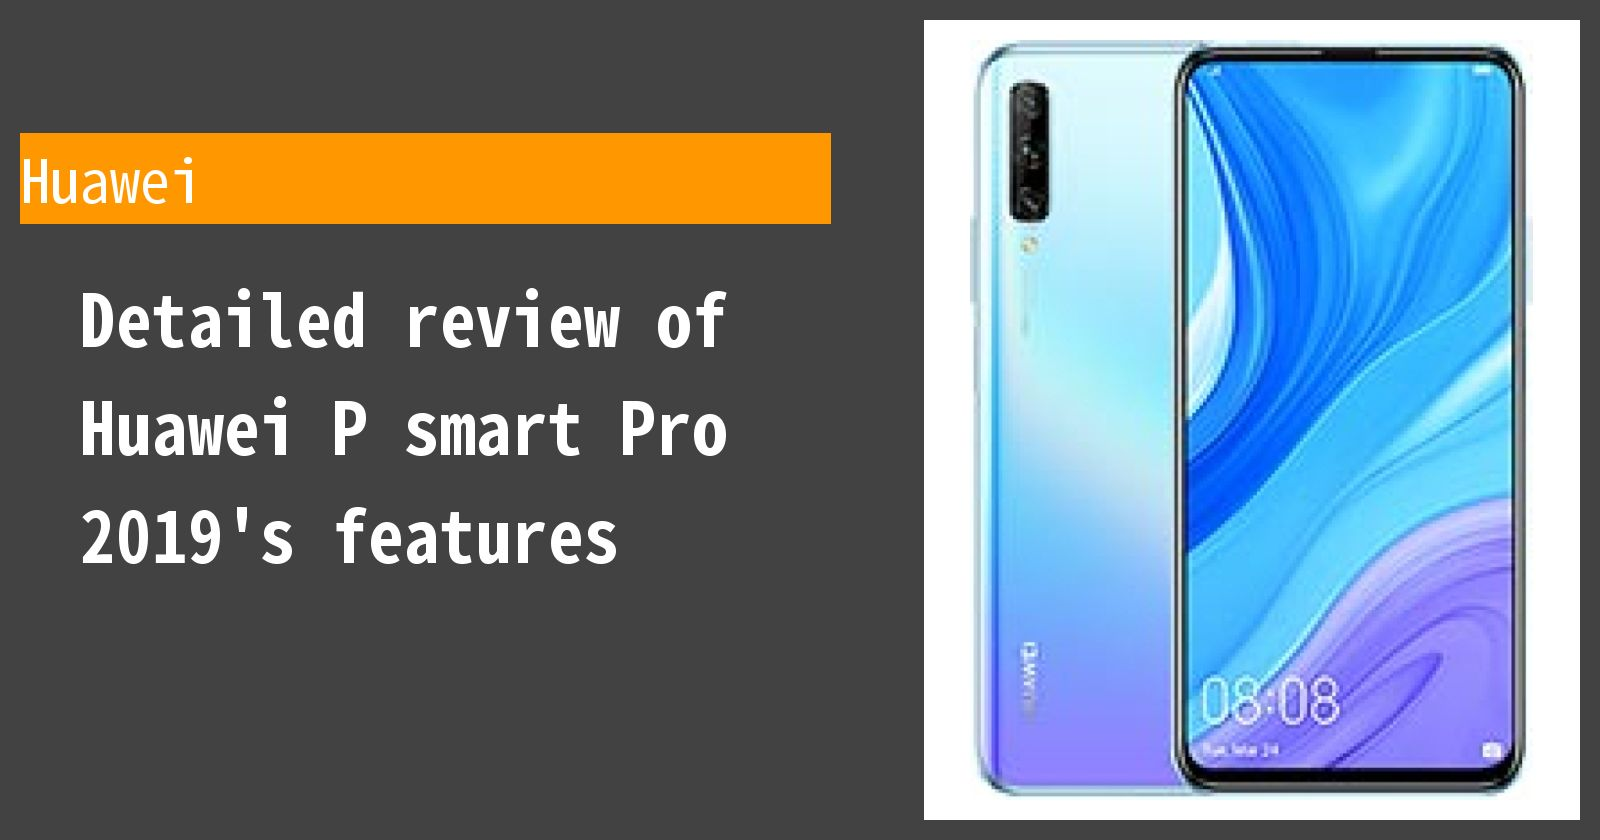 Detailed review of Huawei P smart Pro 2019's features